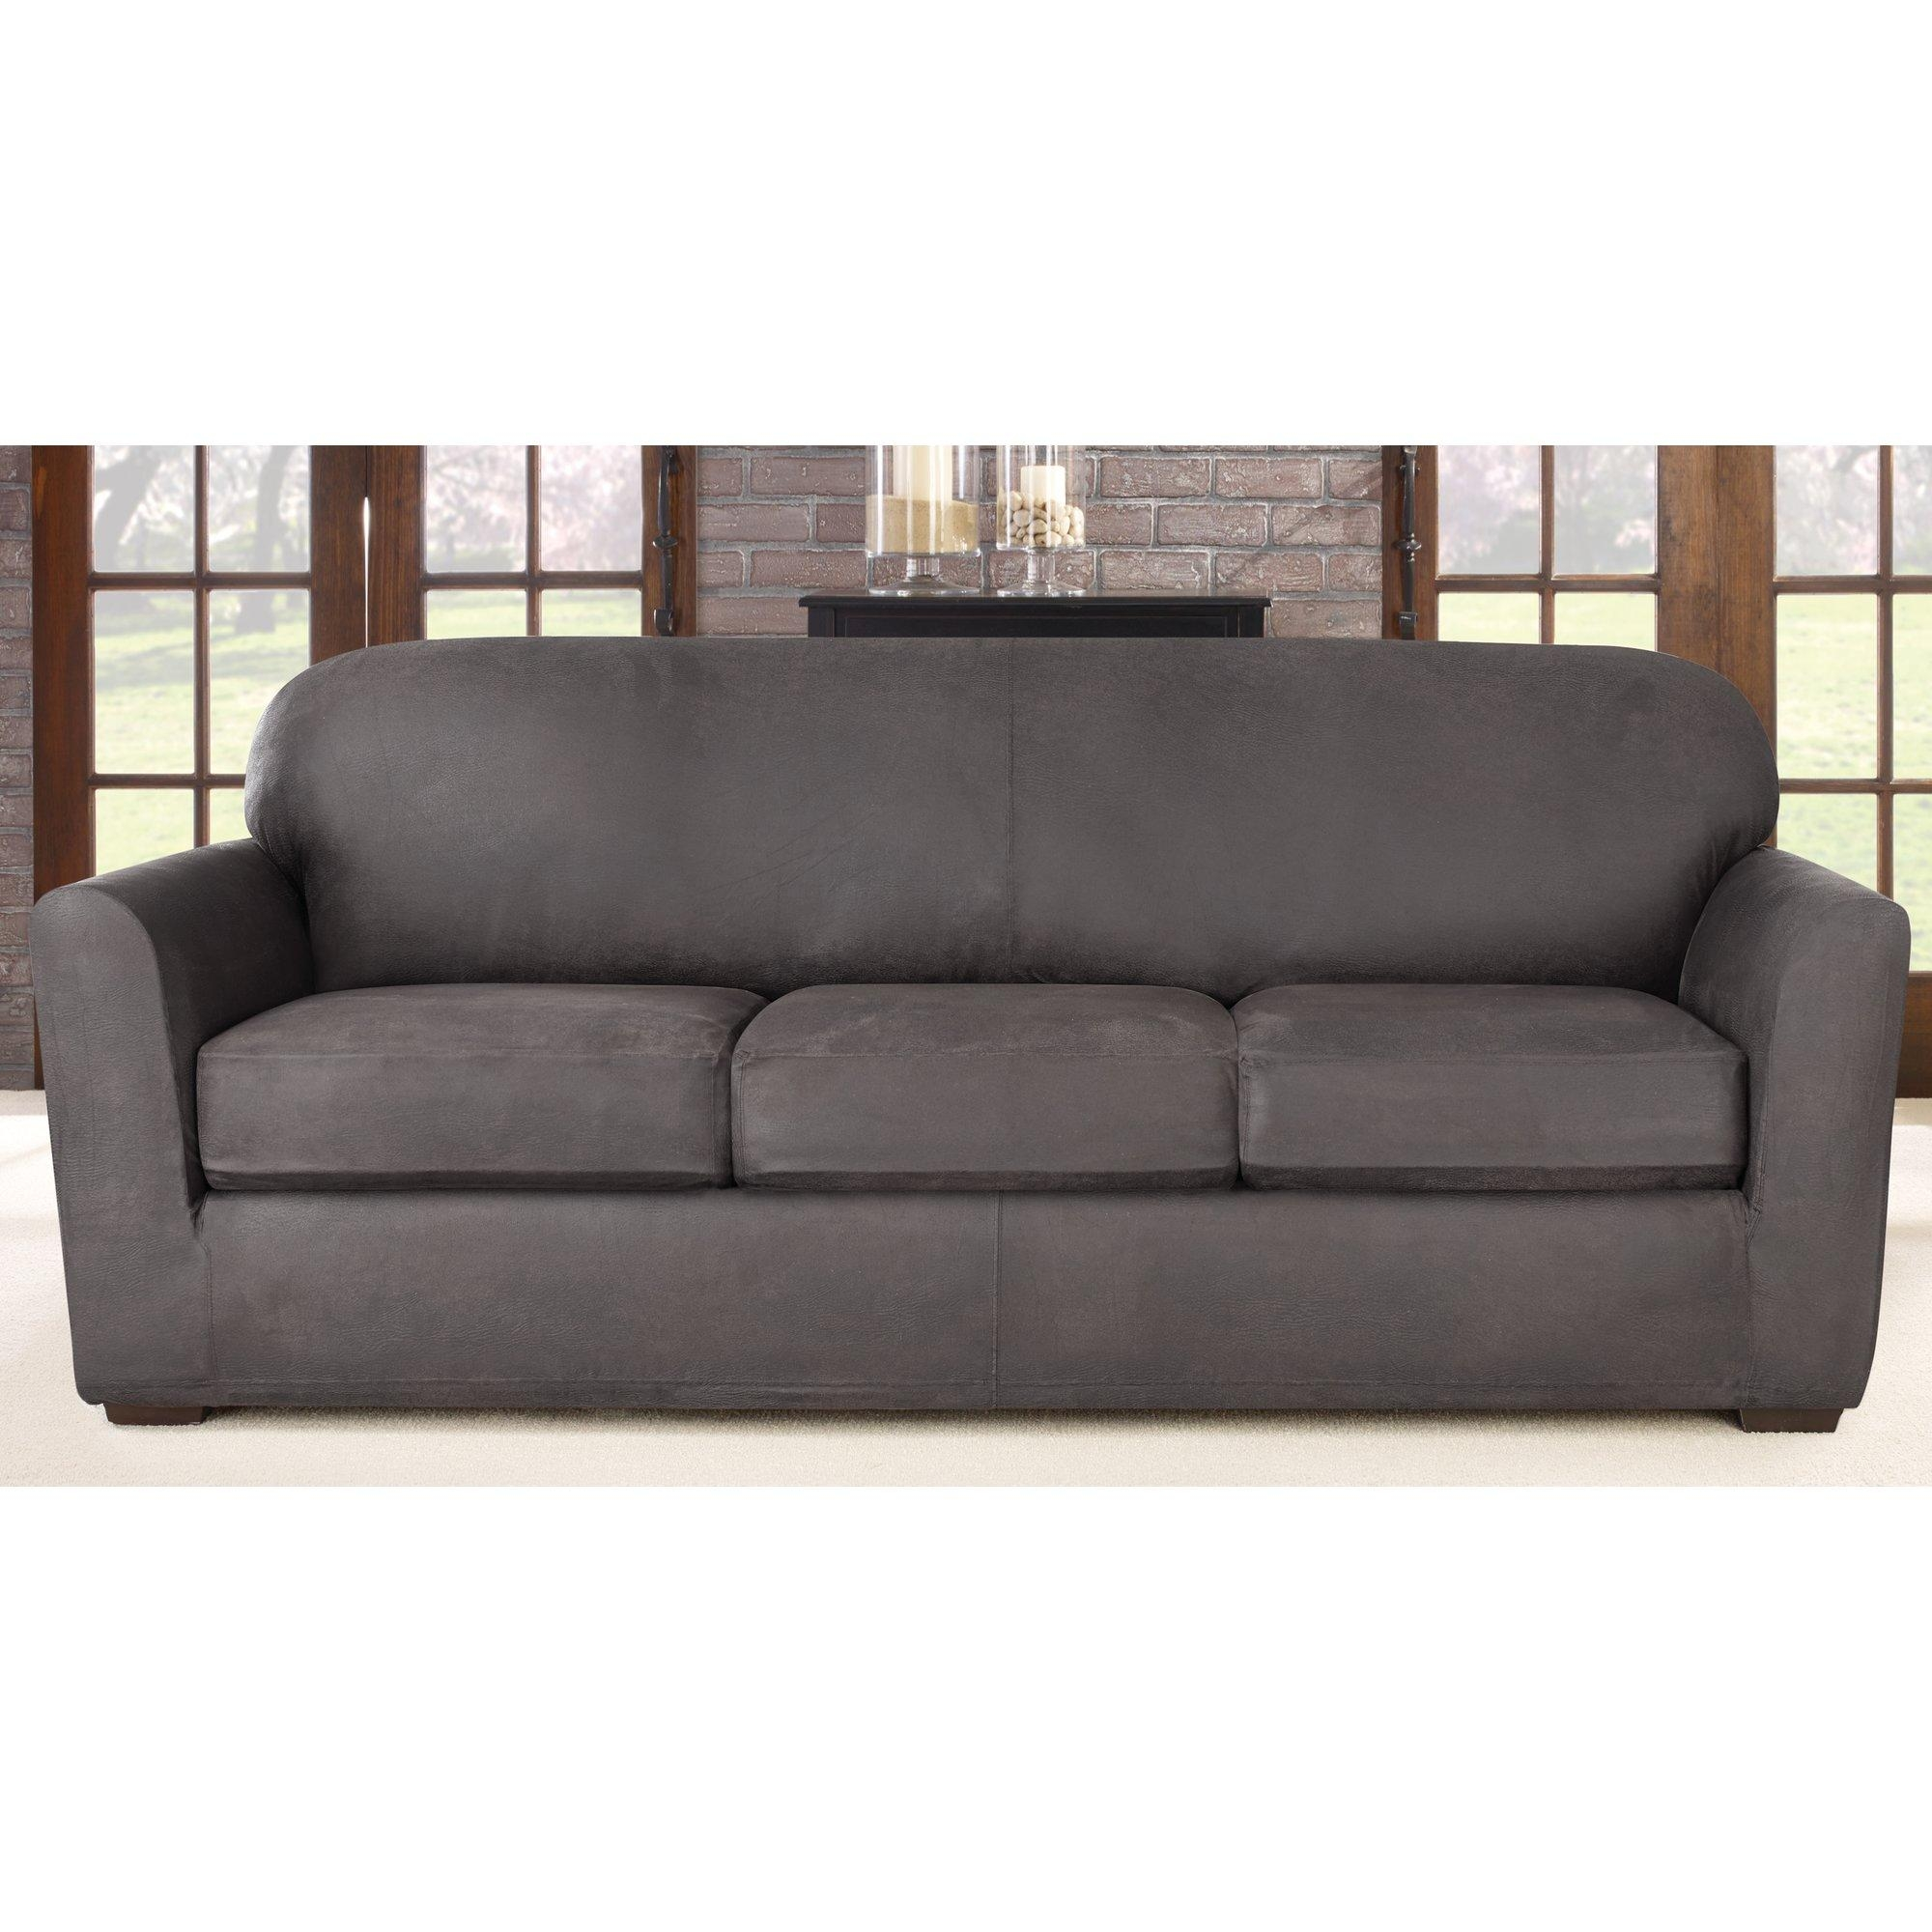 Furniture: Slipcover For Camelback Sofa | Linen Sofa Slipcover With Regard To Camelback Sofa Slipcovers (View 18 of 19)